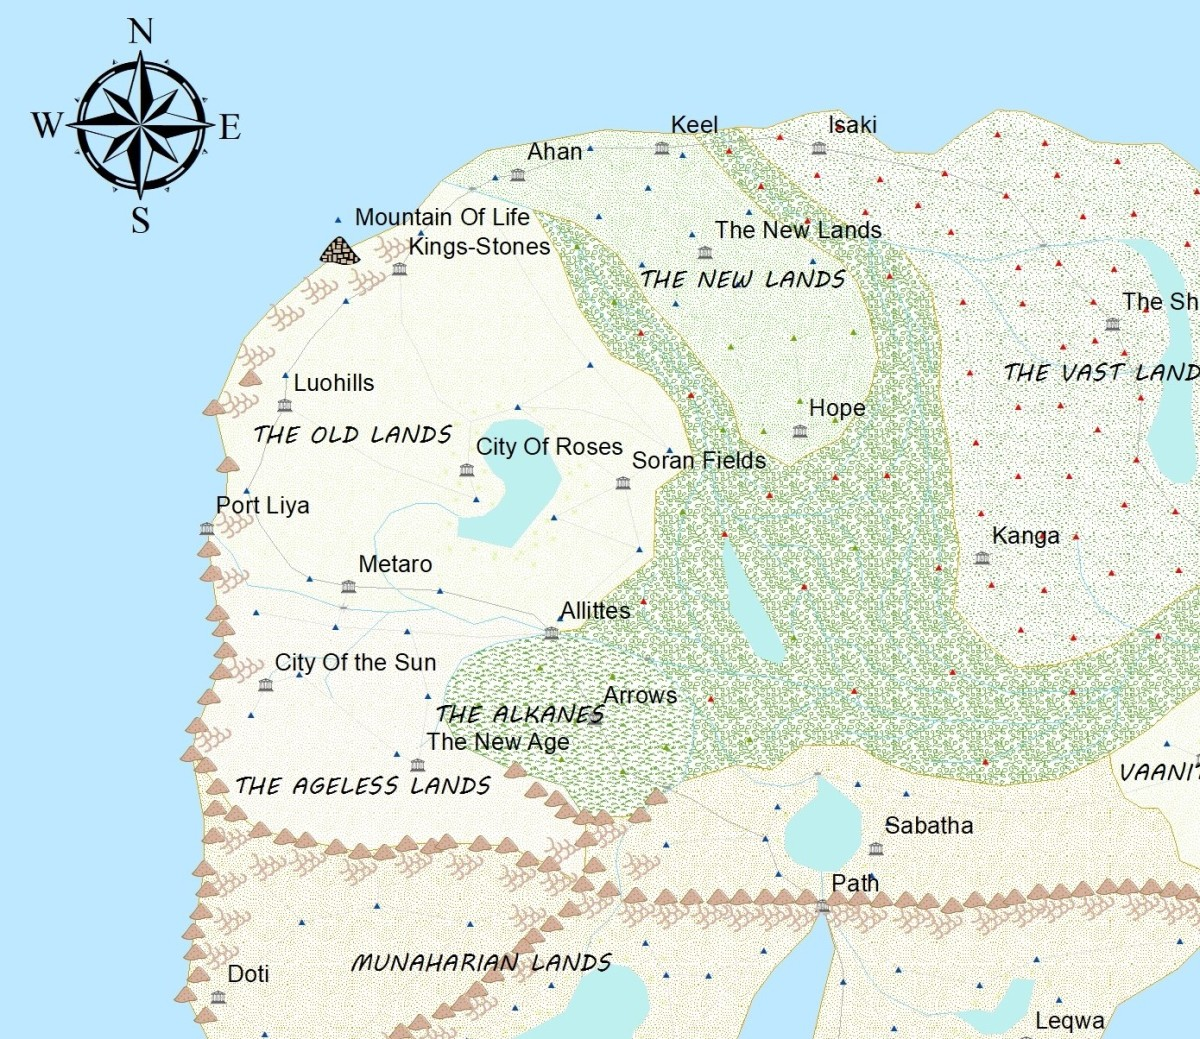 creating-a-fantasy-world-map-scientific-laws-to-remember